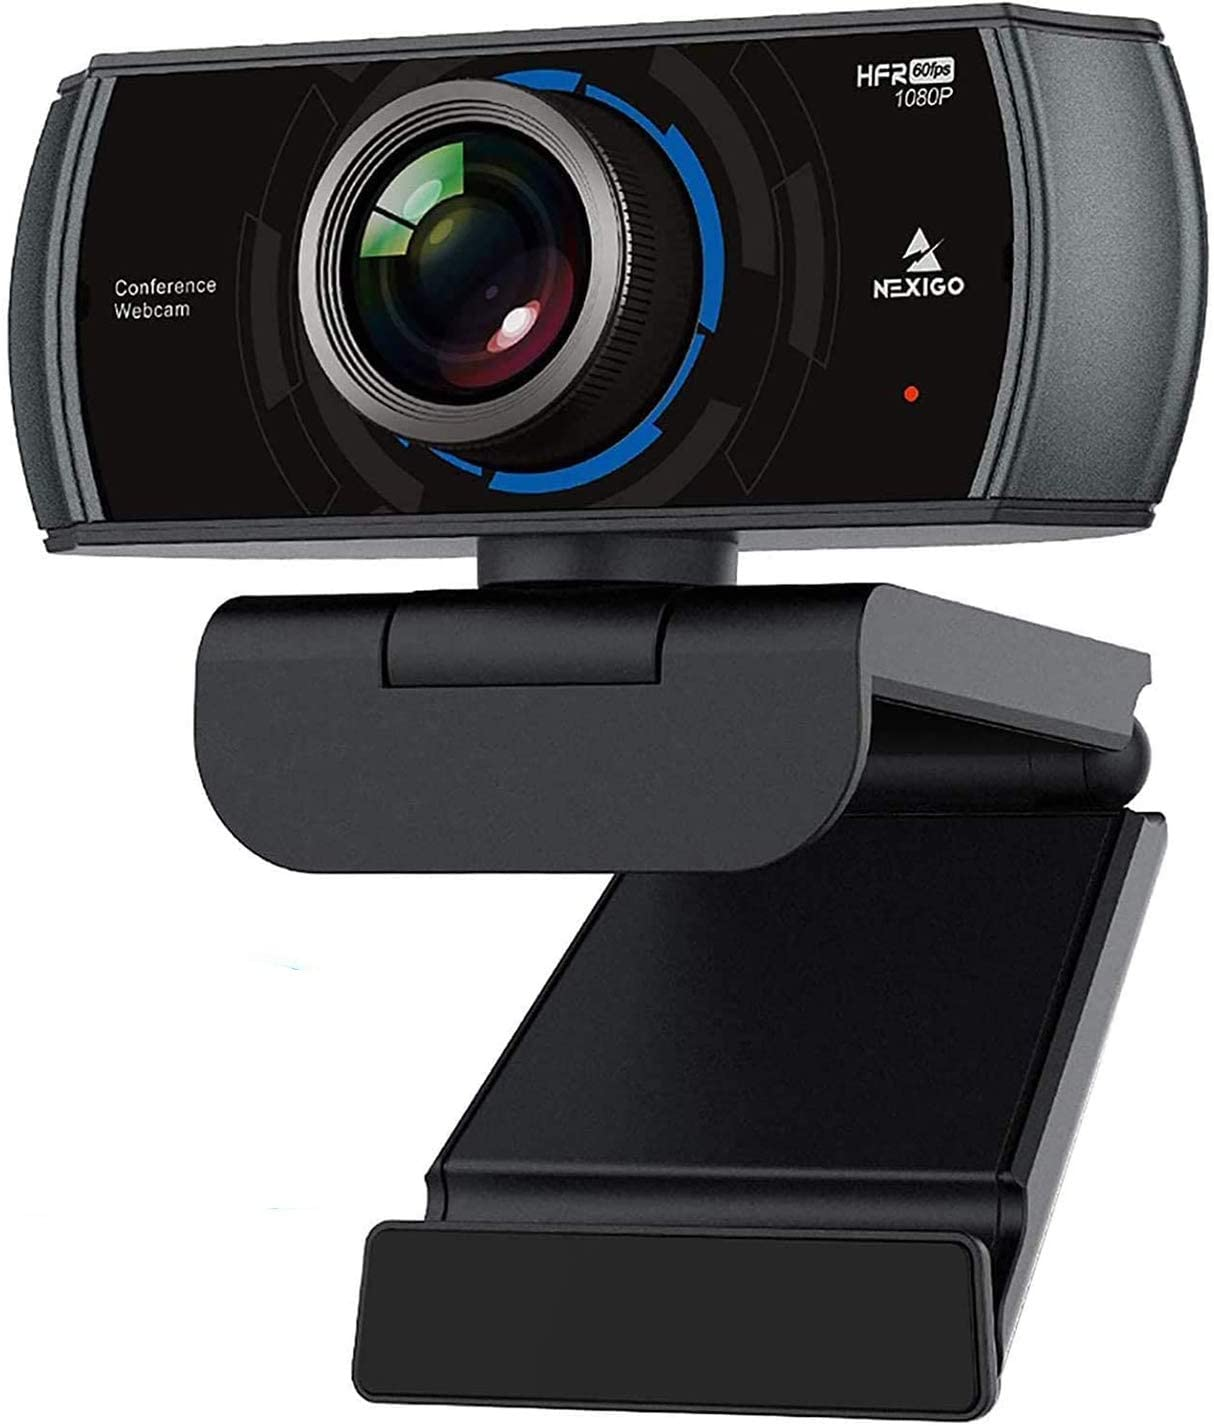 1080P 60FPS Webcam with Microphone, 2021 NexiGo N980P HD USB Computer Camera, Built-in Dual Noise Reduction Mics, 120 Degrees Wide-Angle for Zoom/Skype/FaceTime/Teams, PC Mac Laptop Desktop: Computers & Accessories